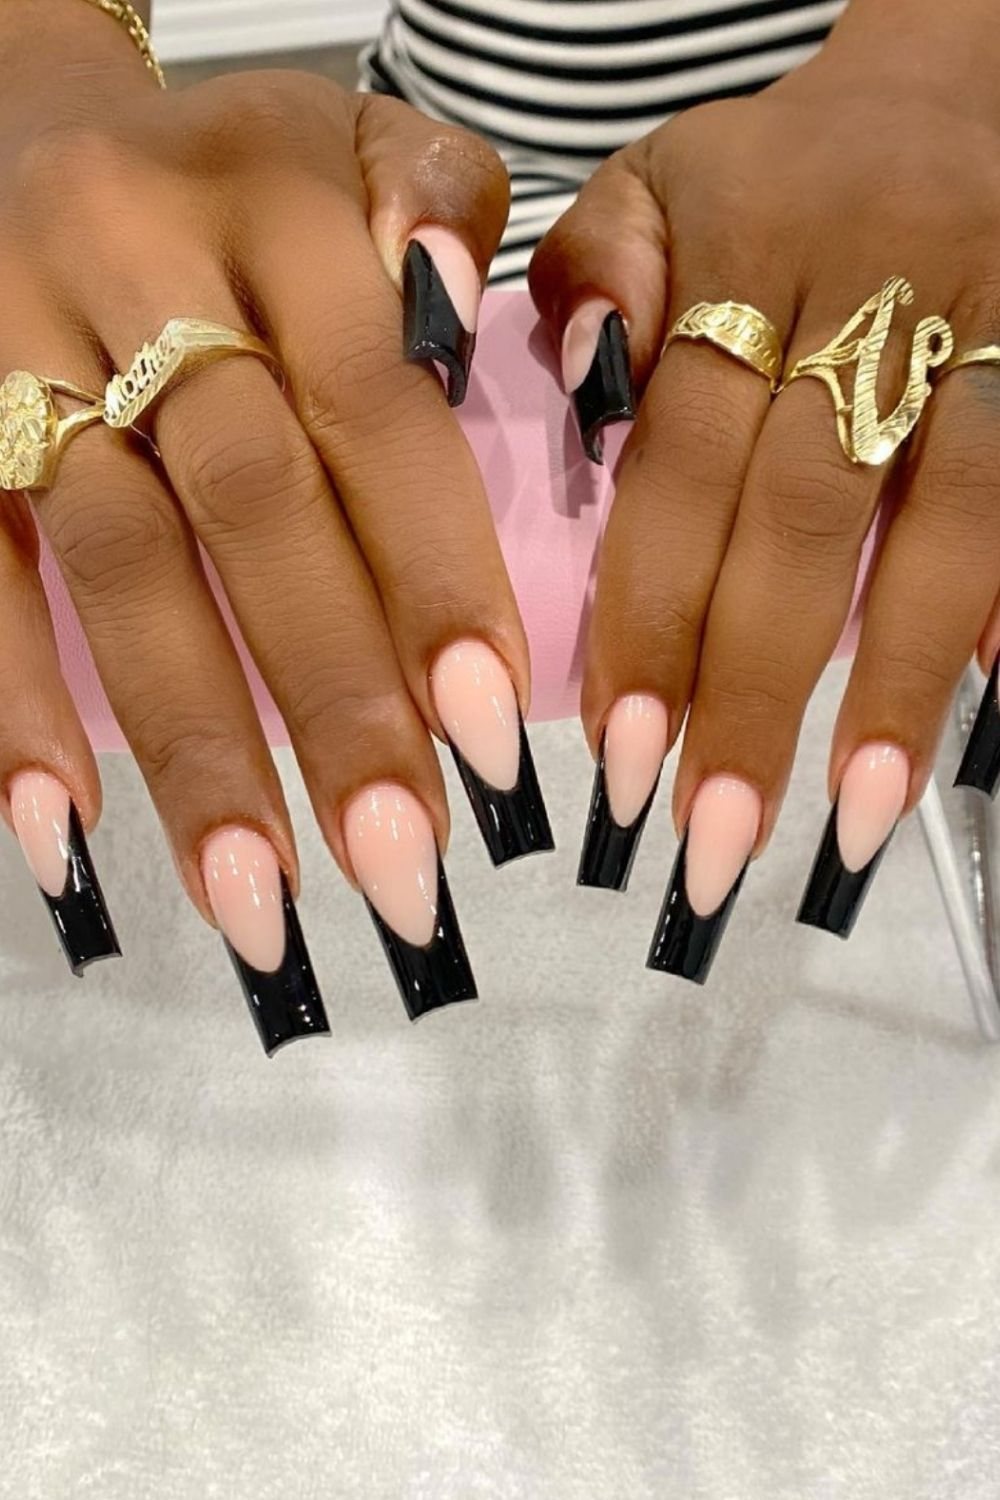 Awesome coffin nail designs for 2021 Summer!